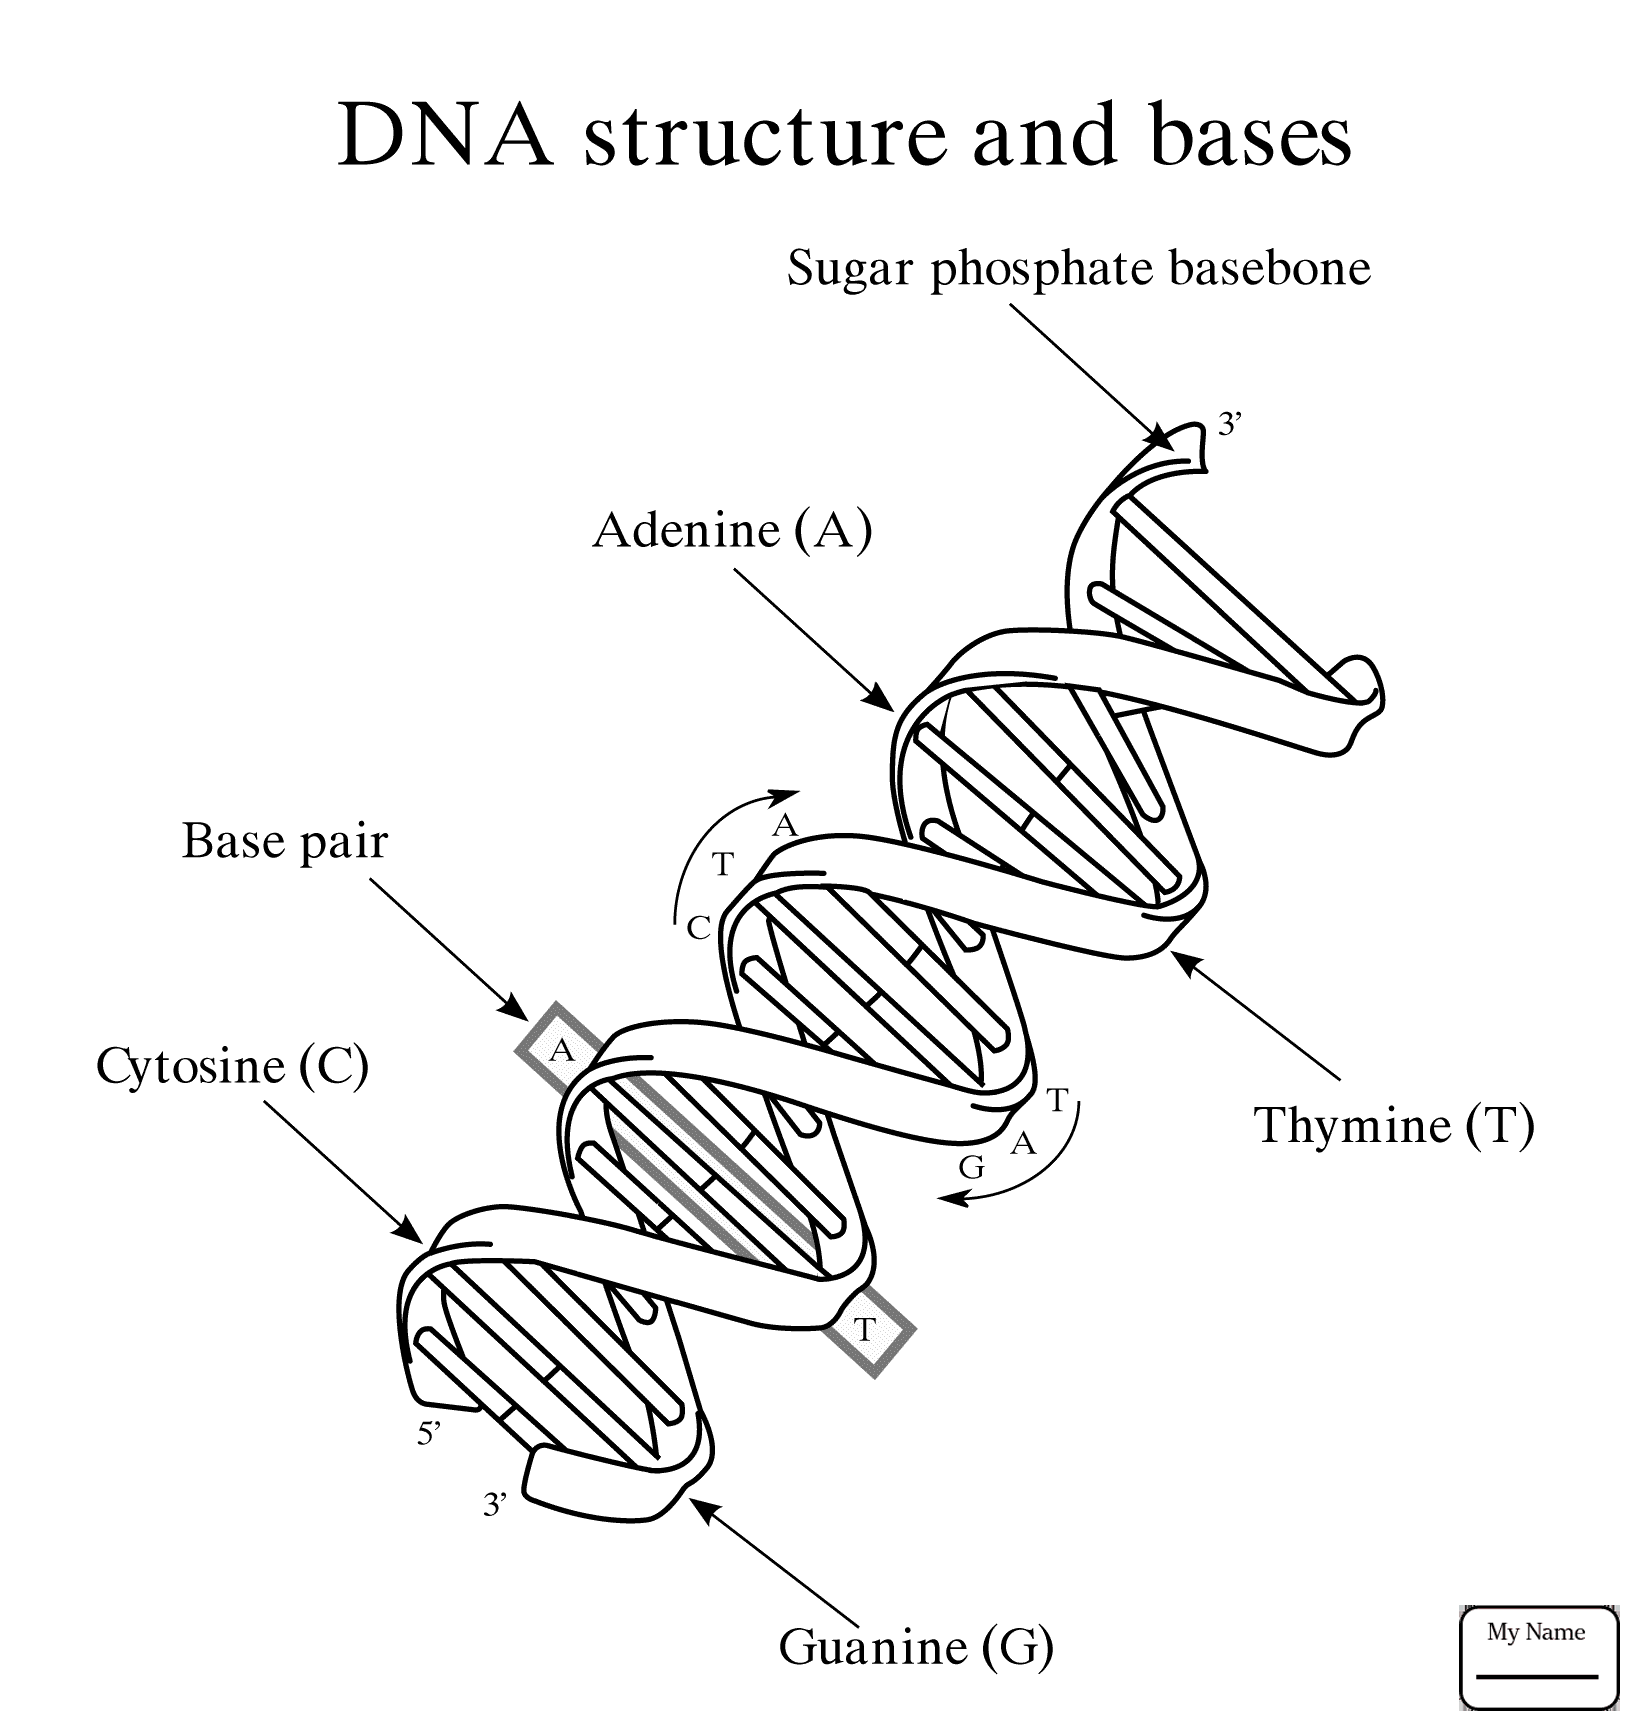 Dna Molecule Drawing At Getdrawings Com Free For